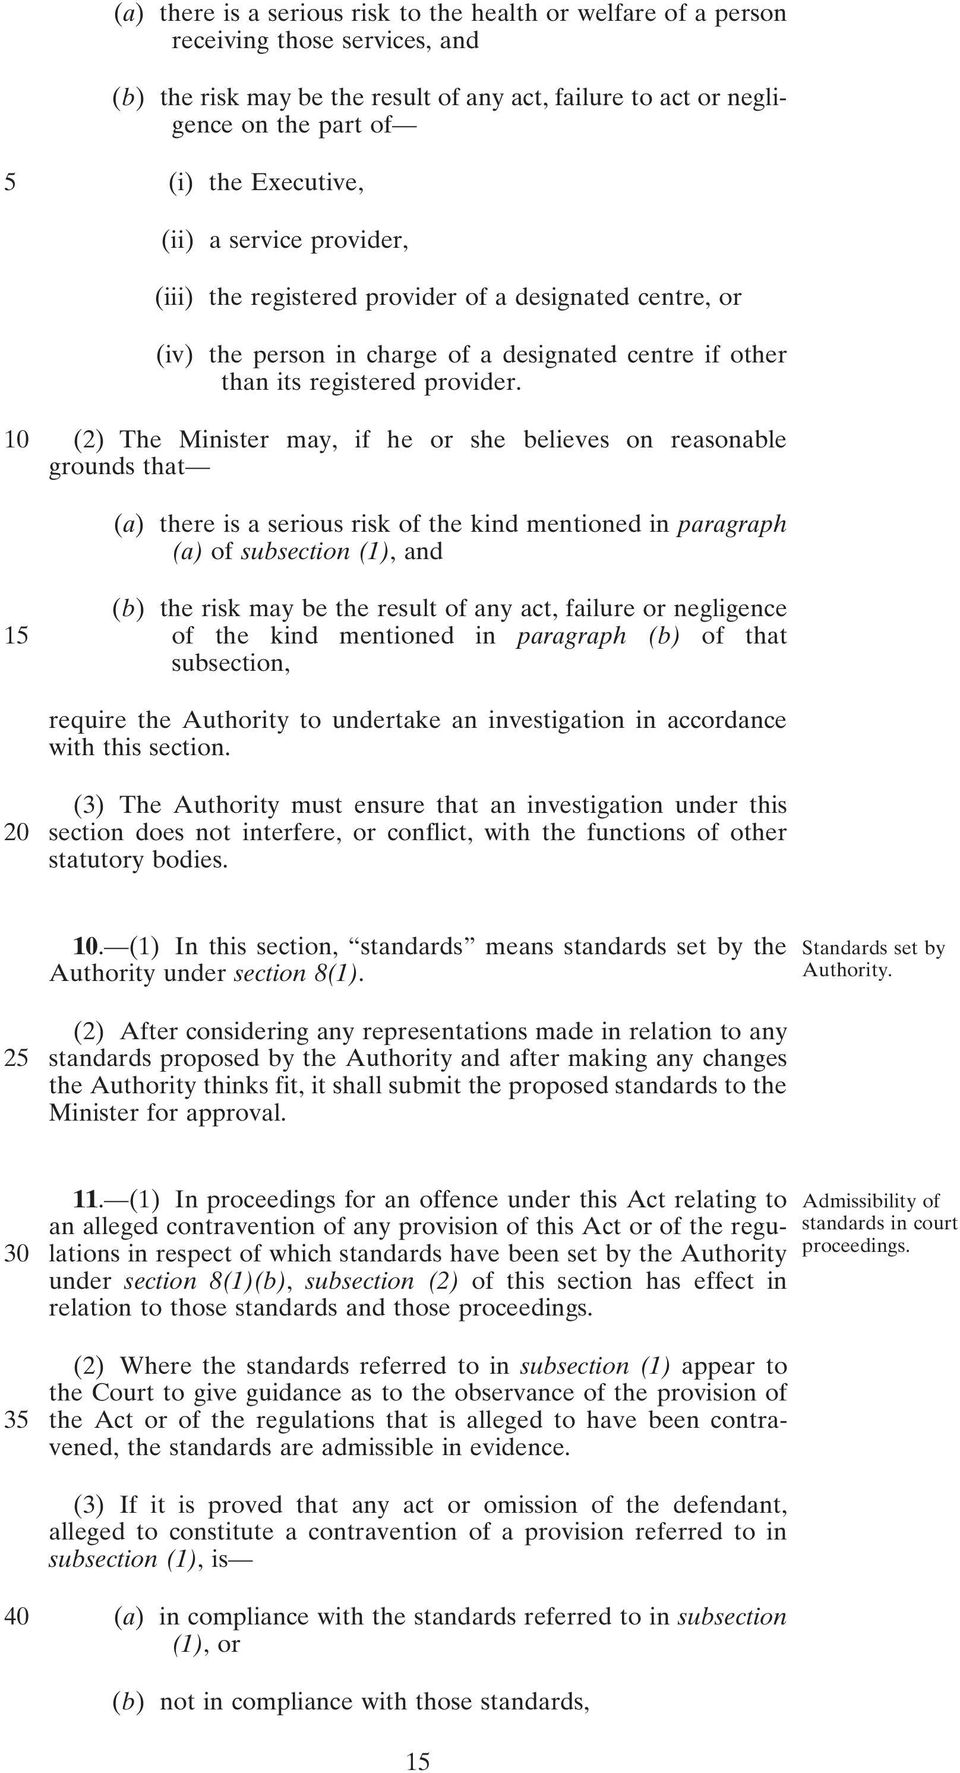 10 (2) The Minister may, if he or she believes on reasonable grounds that (a) there is a serious risk of the kind mentioned in paragraph (a) of subsection (1), and 15 (b) the risk may be the result